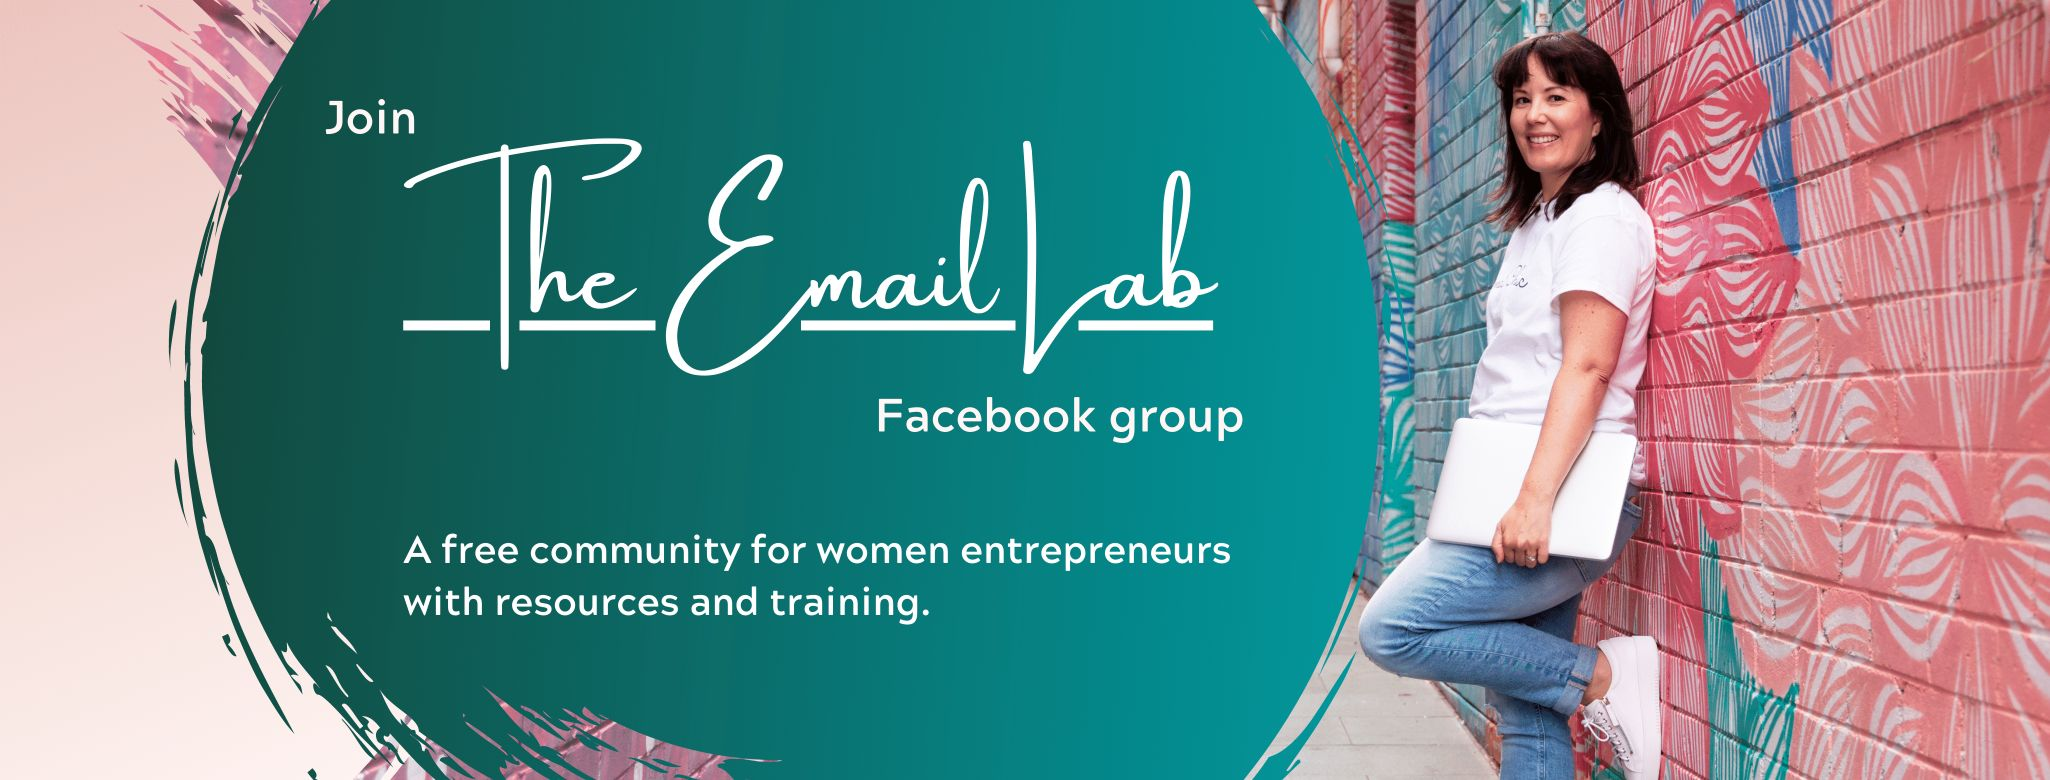 The Email Lab Facebook group